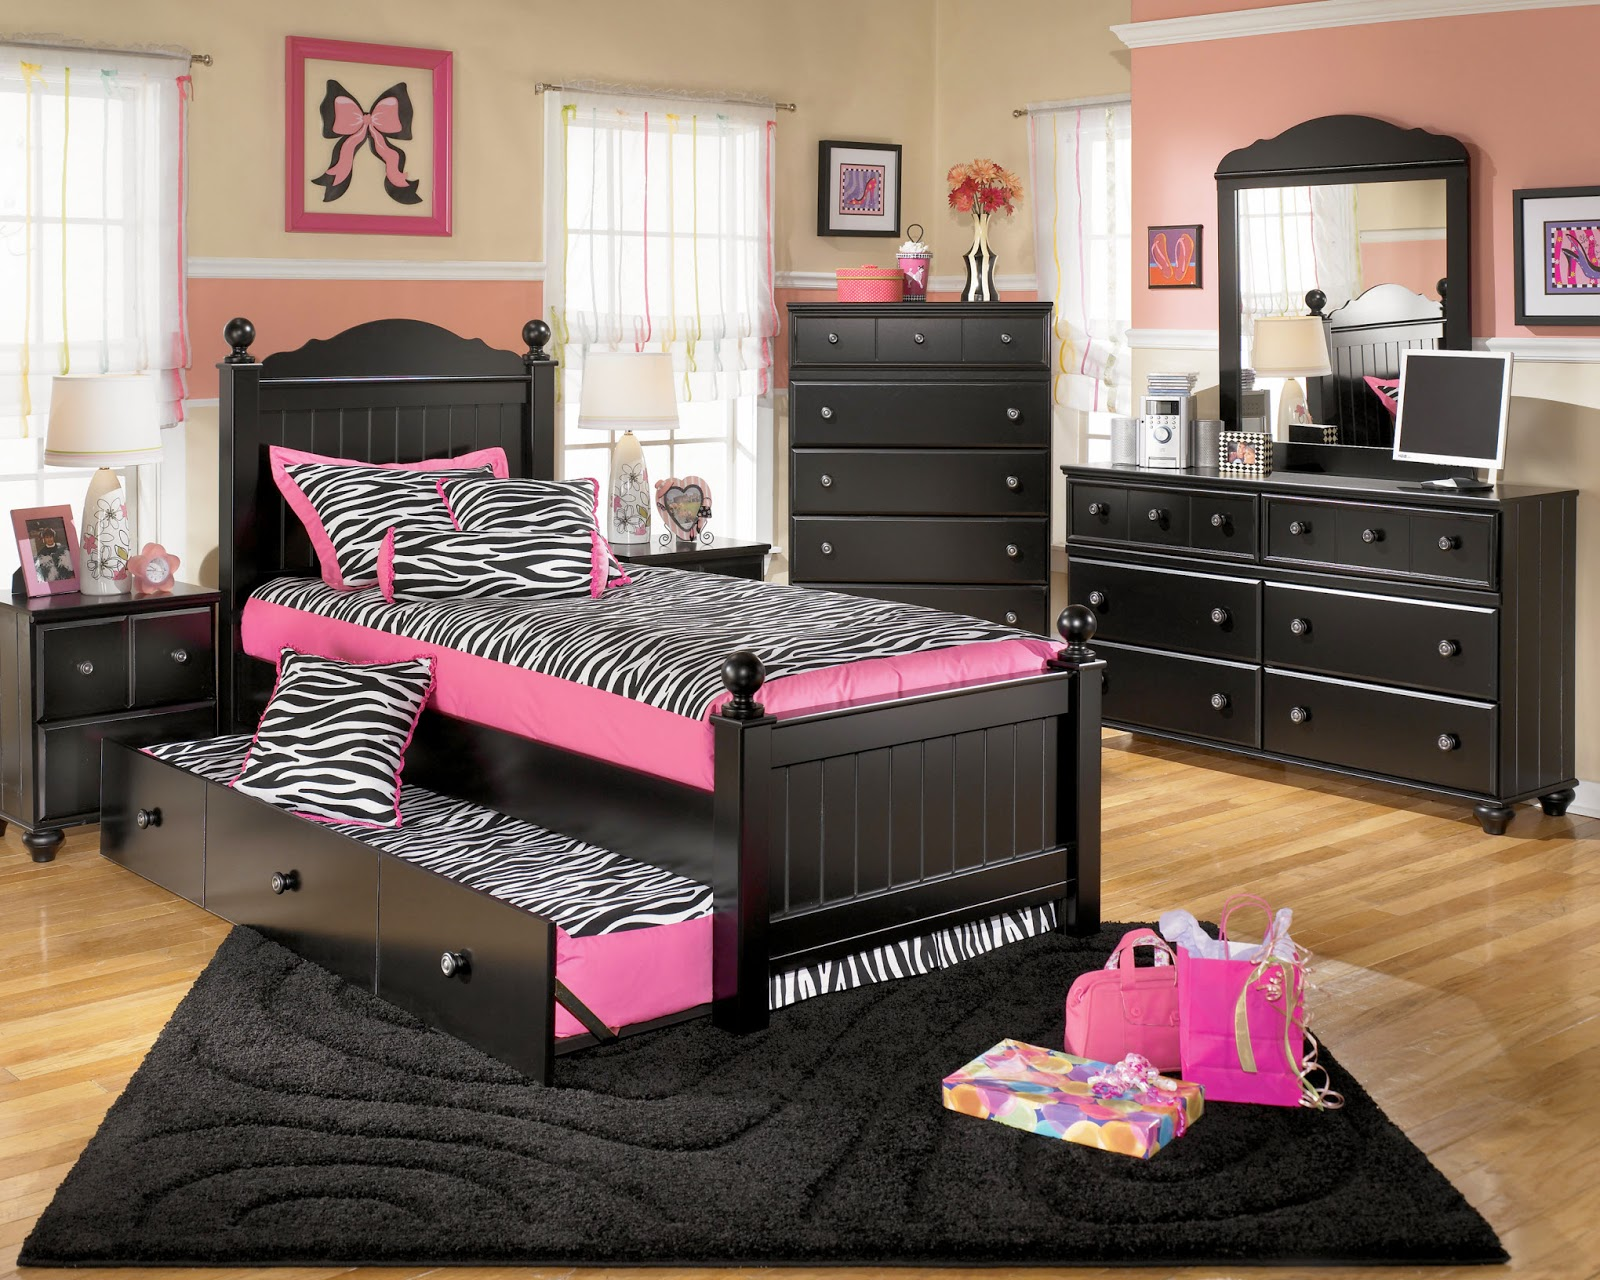 Kids Bedroom 2014 custom angel: kids bedroom furniture sets for girls: plan and idea